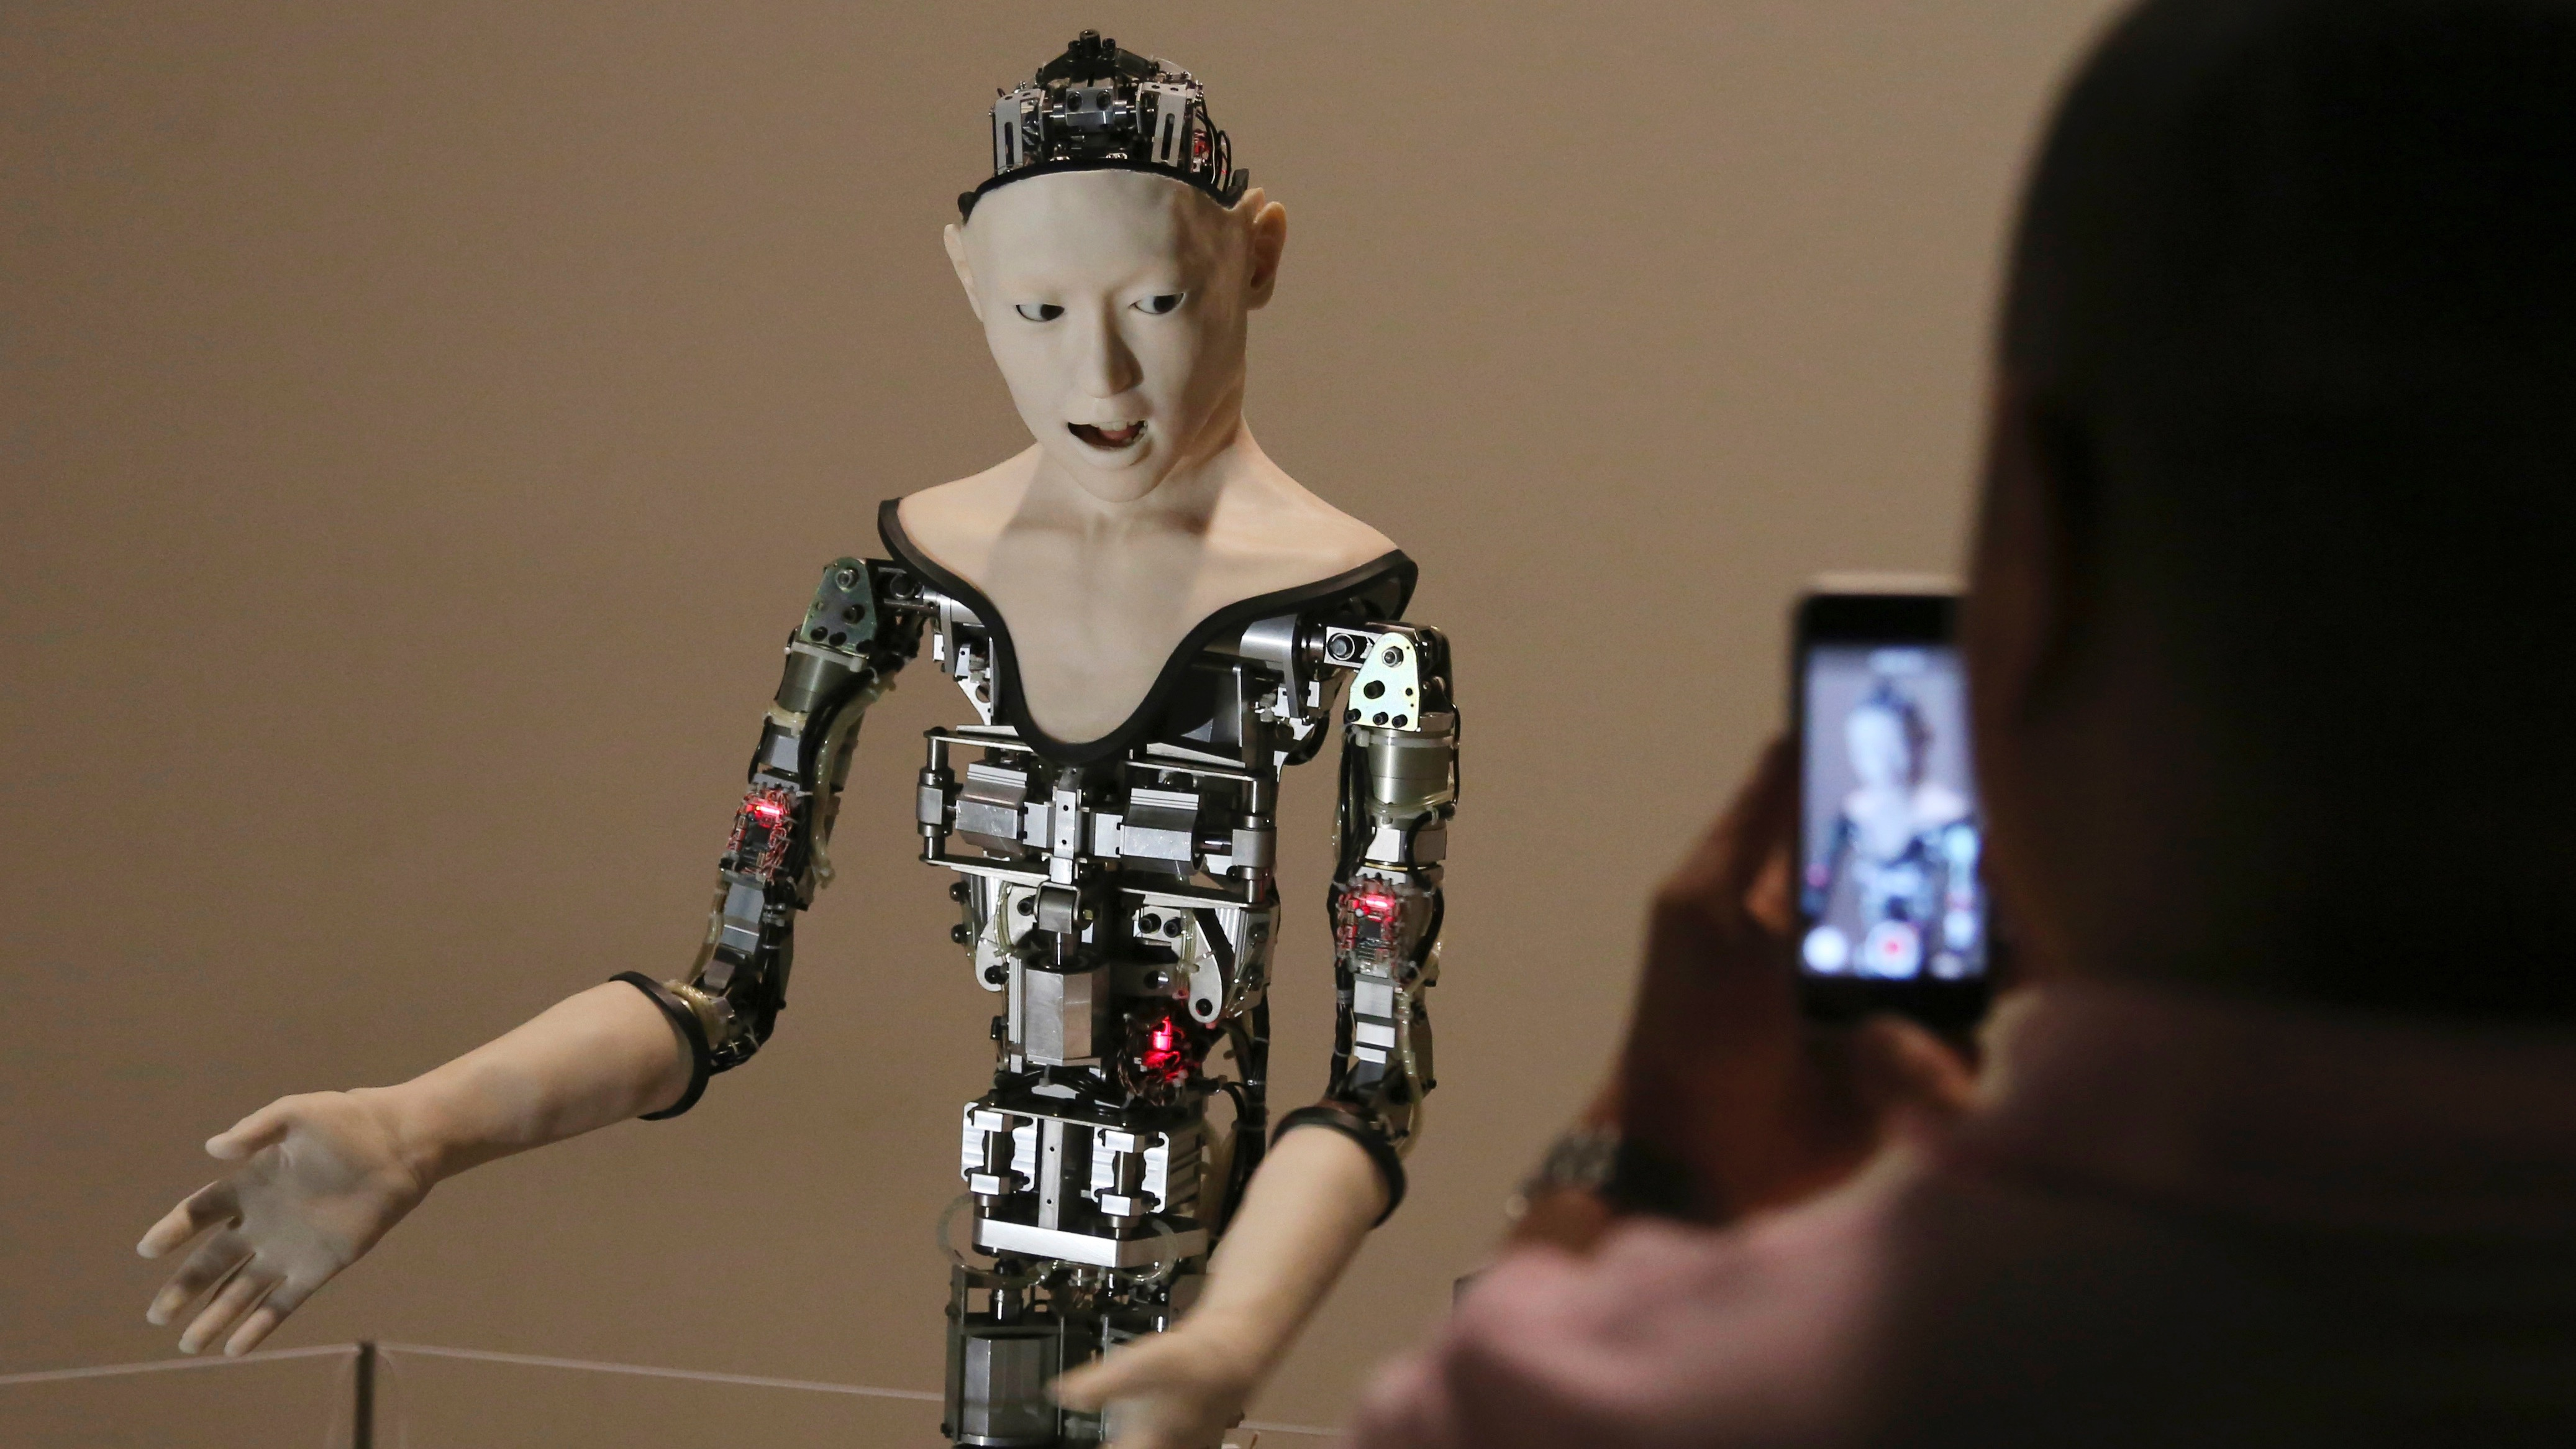 """Humanoid robot """"Alter"""" is displays at the National Museum of Emerging Science and Innovation in Tokyo, Monday, Aug. 1, 2016. (AP Photo/Koji Sasahara)"""